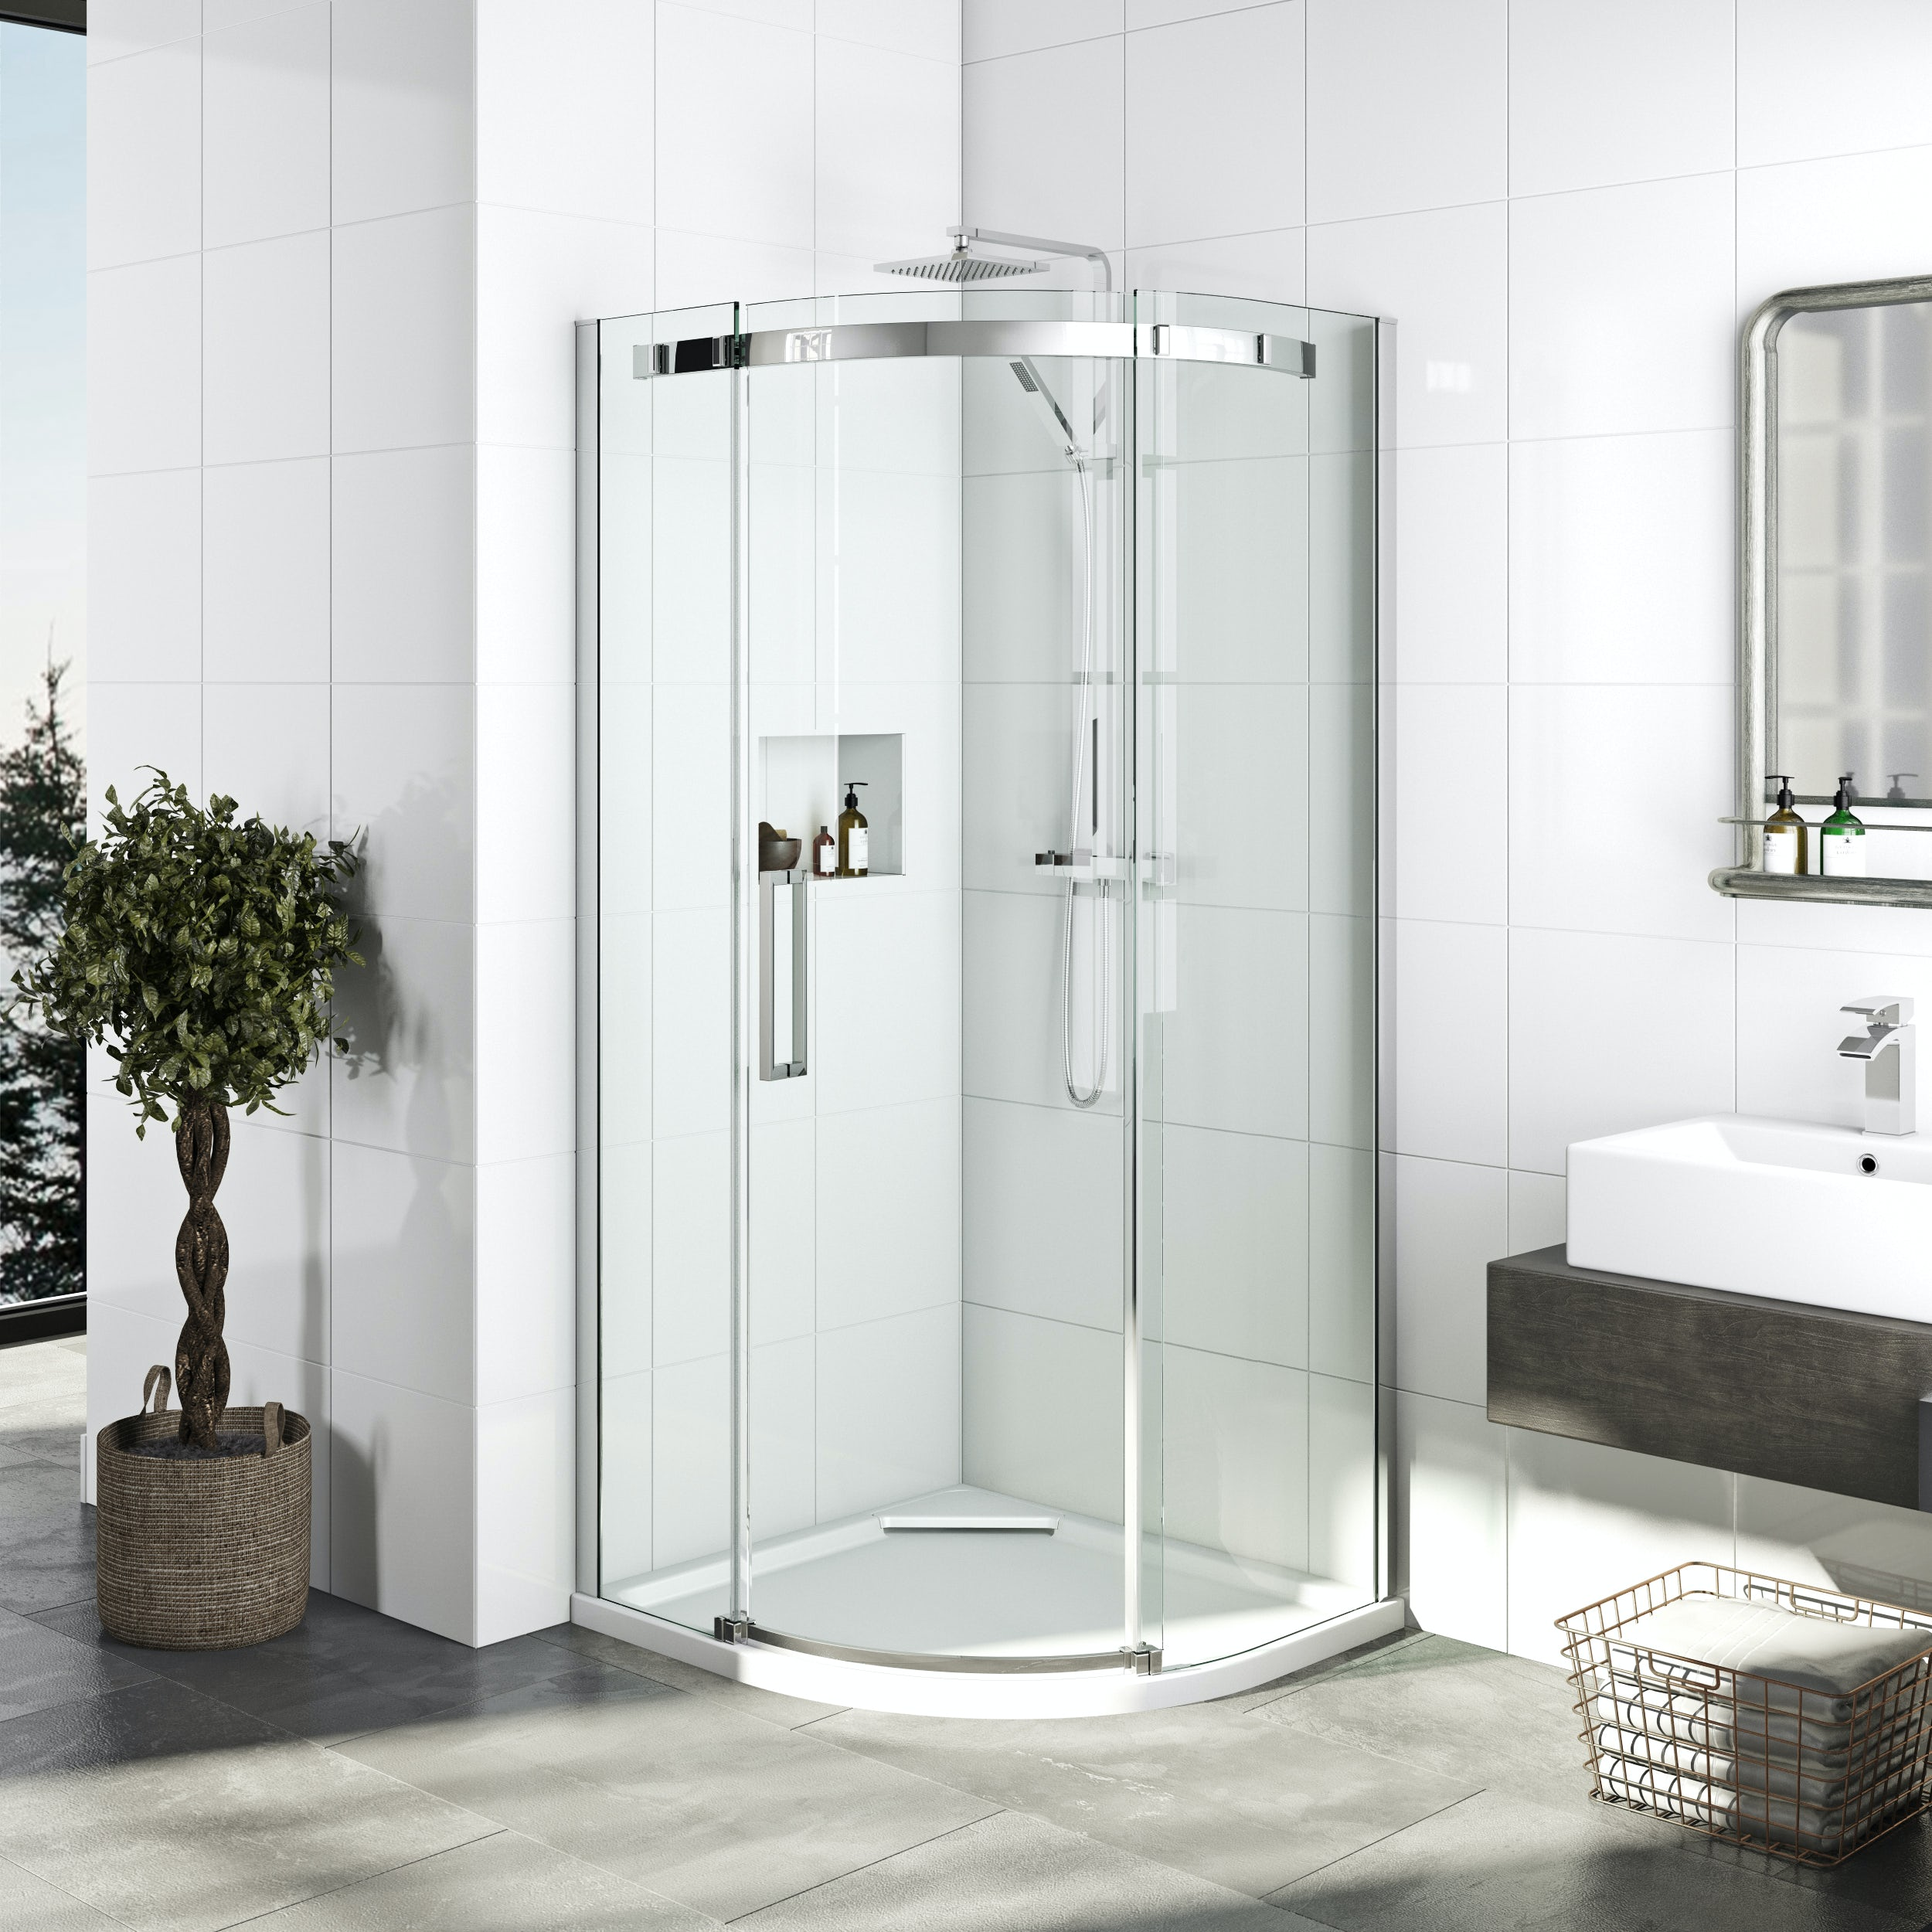 Mode Elite 10mm Frameless Quadrant Shower Enclosure